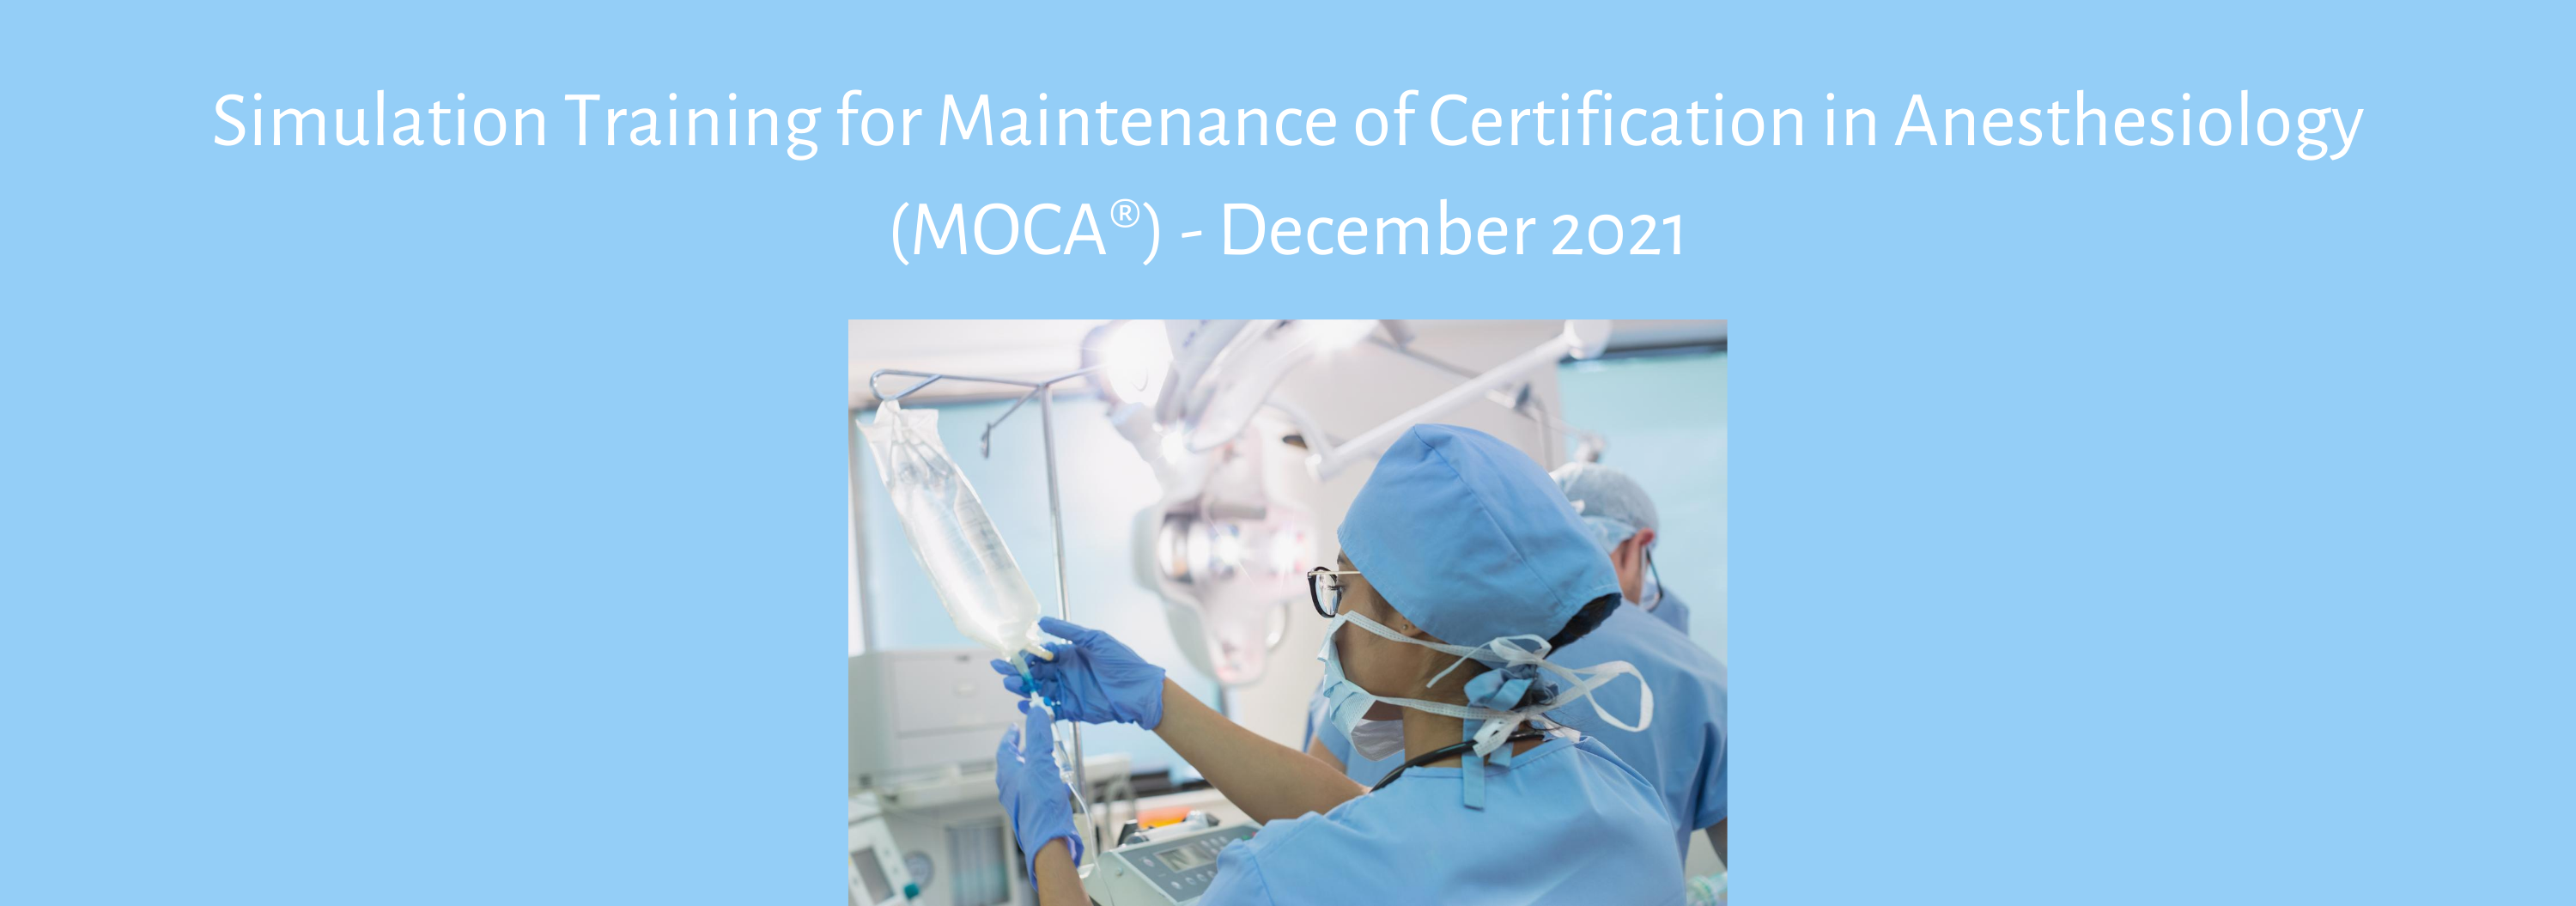 Simulation Training for Maintenance of Certification in Anesthesiology (MOCA) - December 2021 Banner